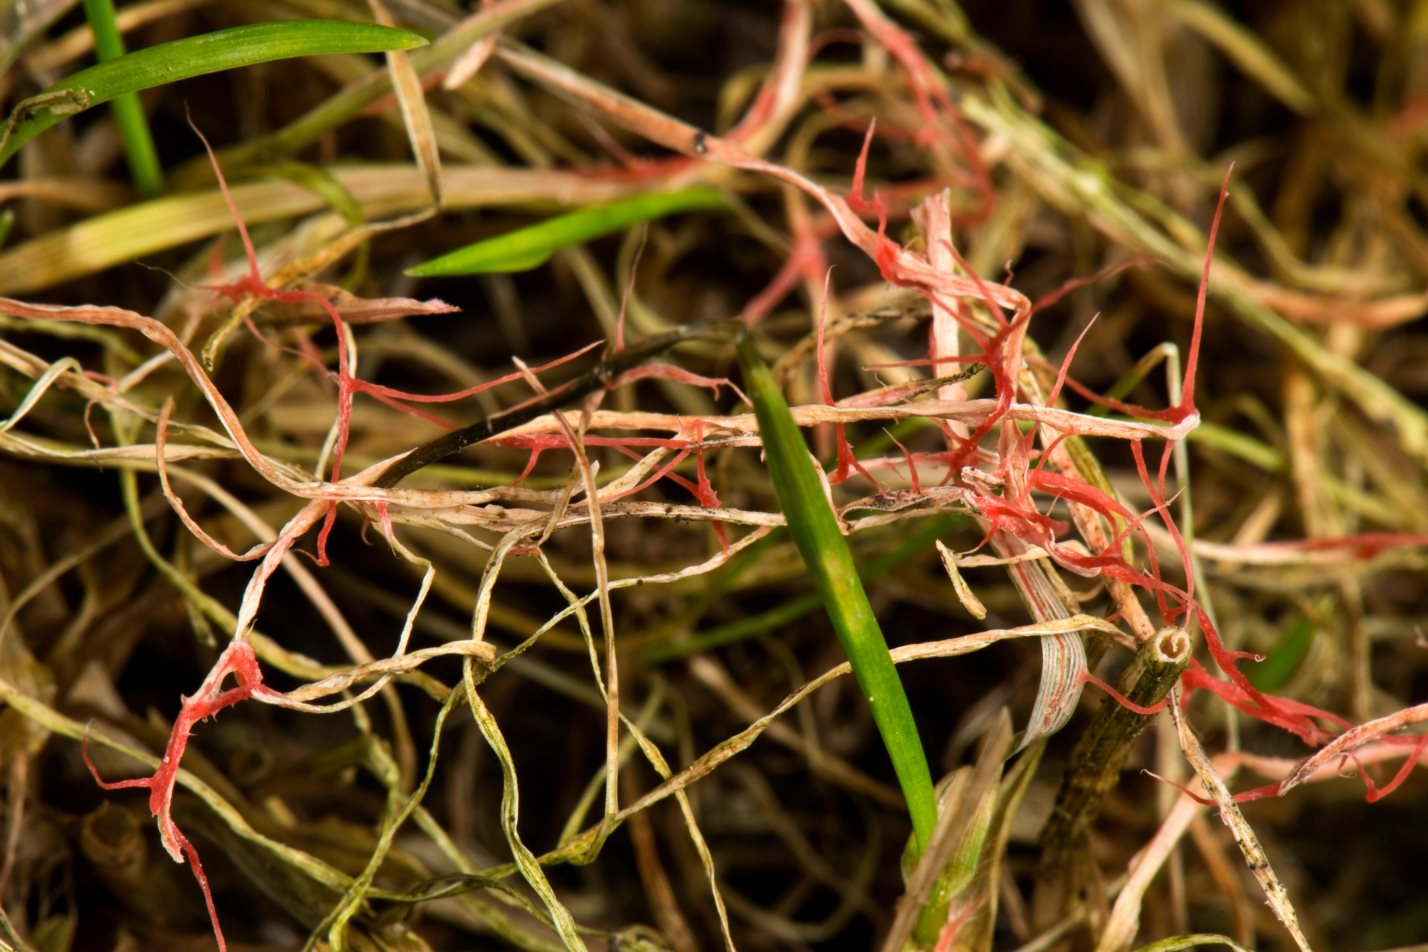 Red thread, Laetisaria fuciformis, damage and stromata from the disease on lawn grass